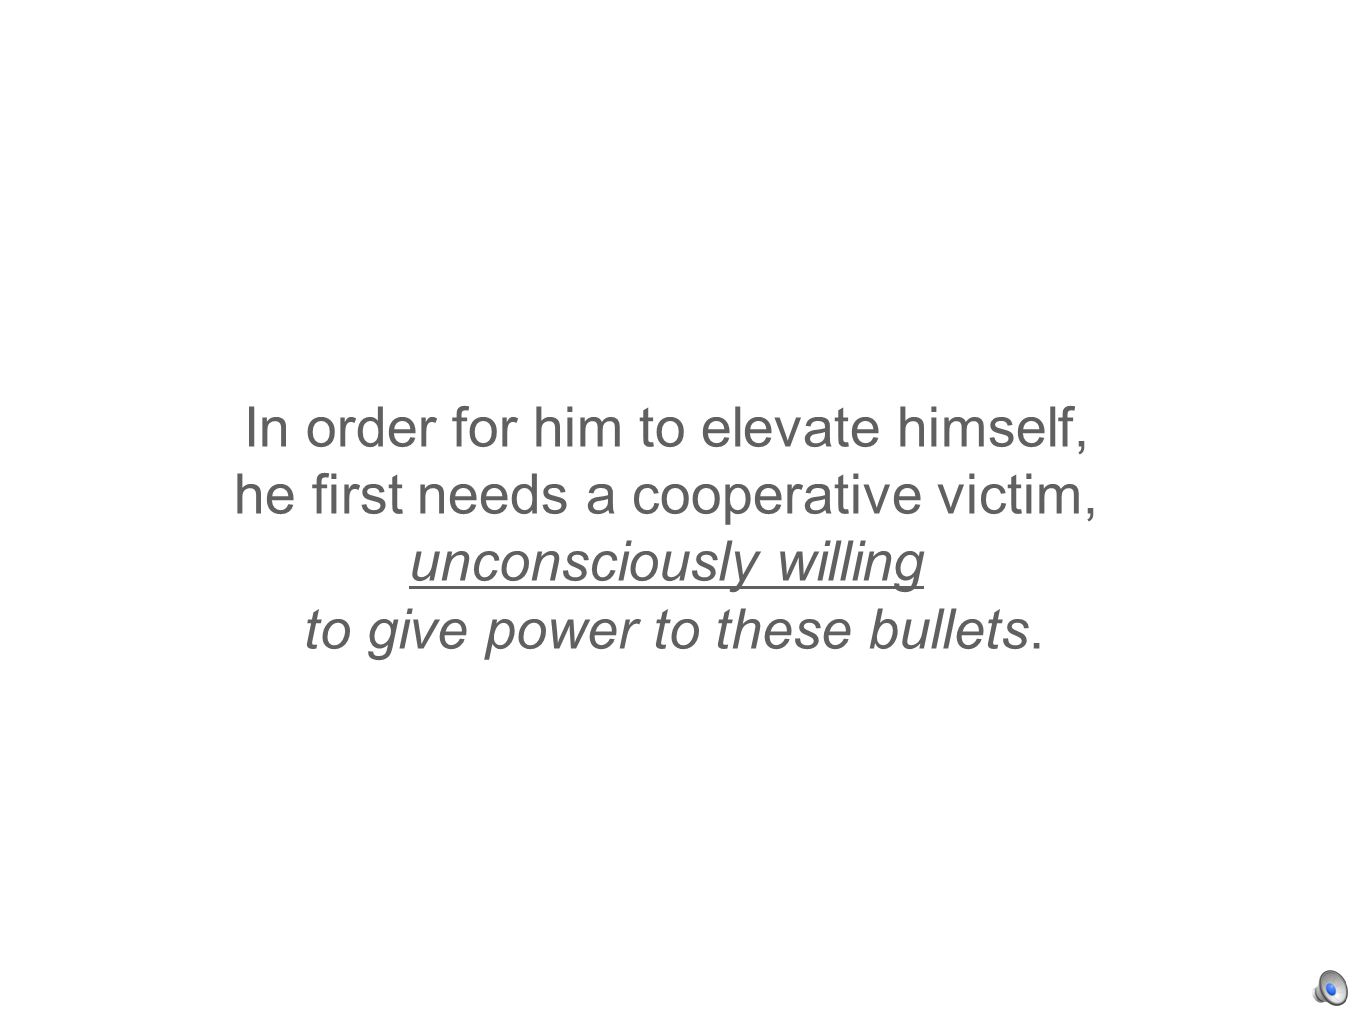 In order for him to elevate himself, he first needs a cooperative victim, unconsciously willing to give power to these bullets.